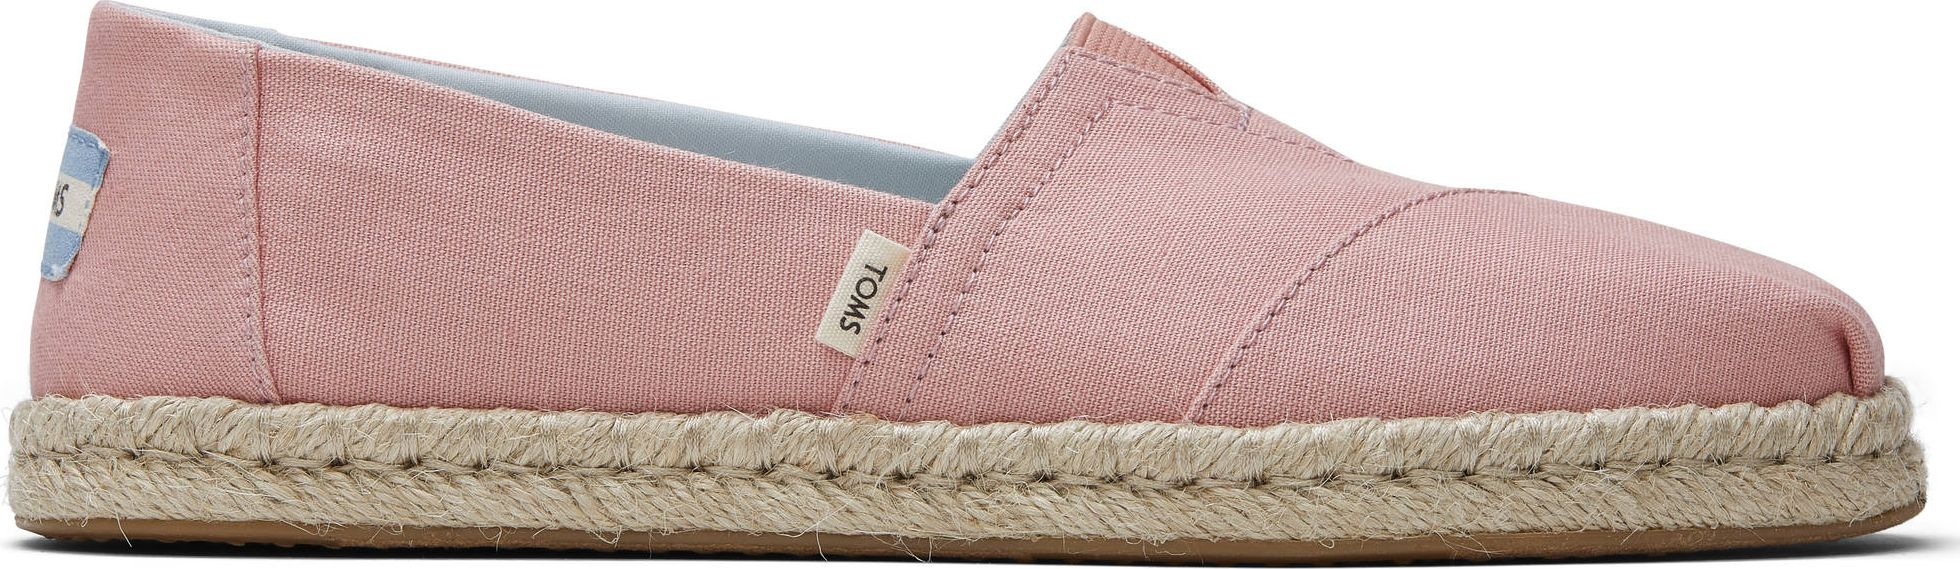 TOMS Plant Dyed Canvas Rope Women's Alpargata Pink 36,5